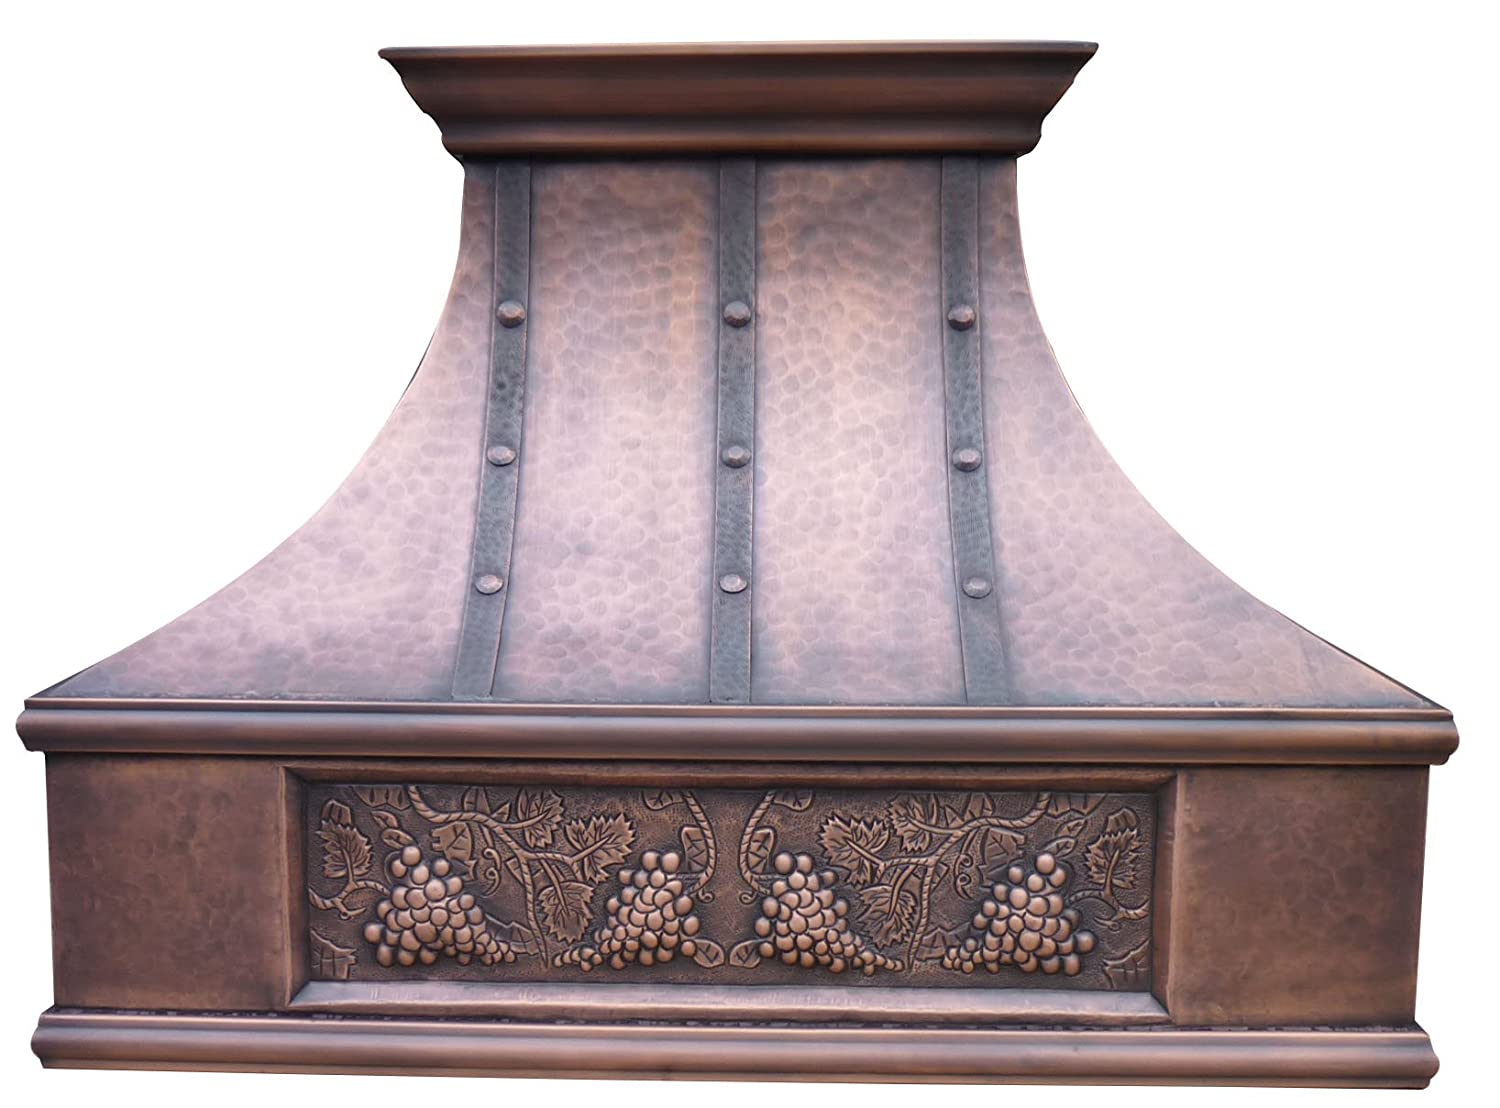 Copper Range Hood Cover with Commercial Grade Stainless Steel Vent, Inlcudes Fan Motor, Light, and Baffle Filter, Elegant Design with Custom Apron Design Wall Mount 30 x 30 inches